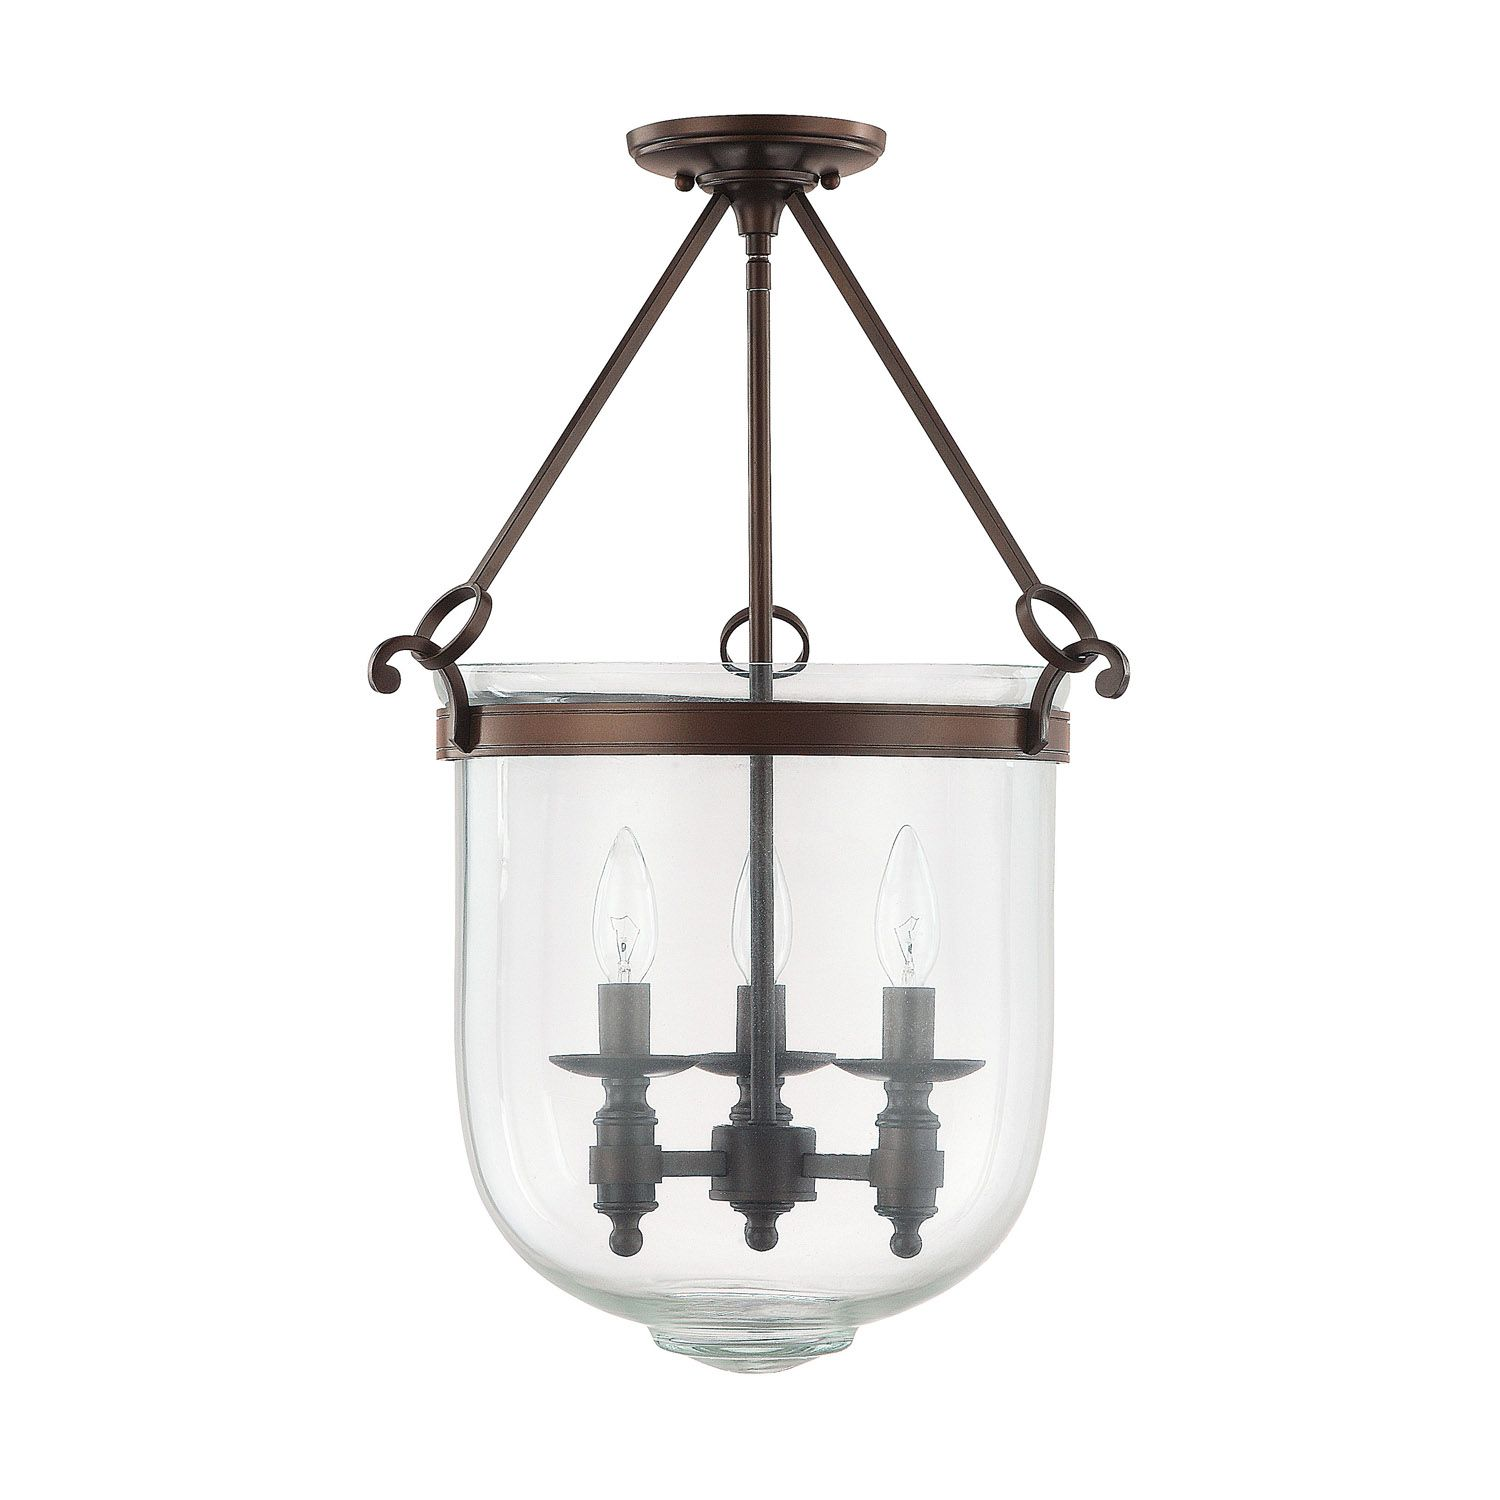 Capital Lighting 9401BB Covington Burnished Bronze Pendant On Sale Now. Guaranteed Low Prices. Call Today (877)-237-9098.